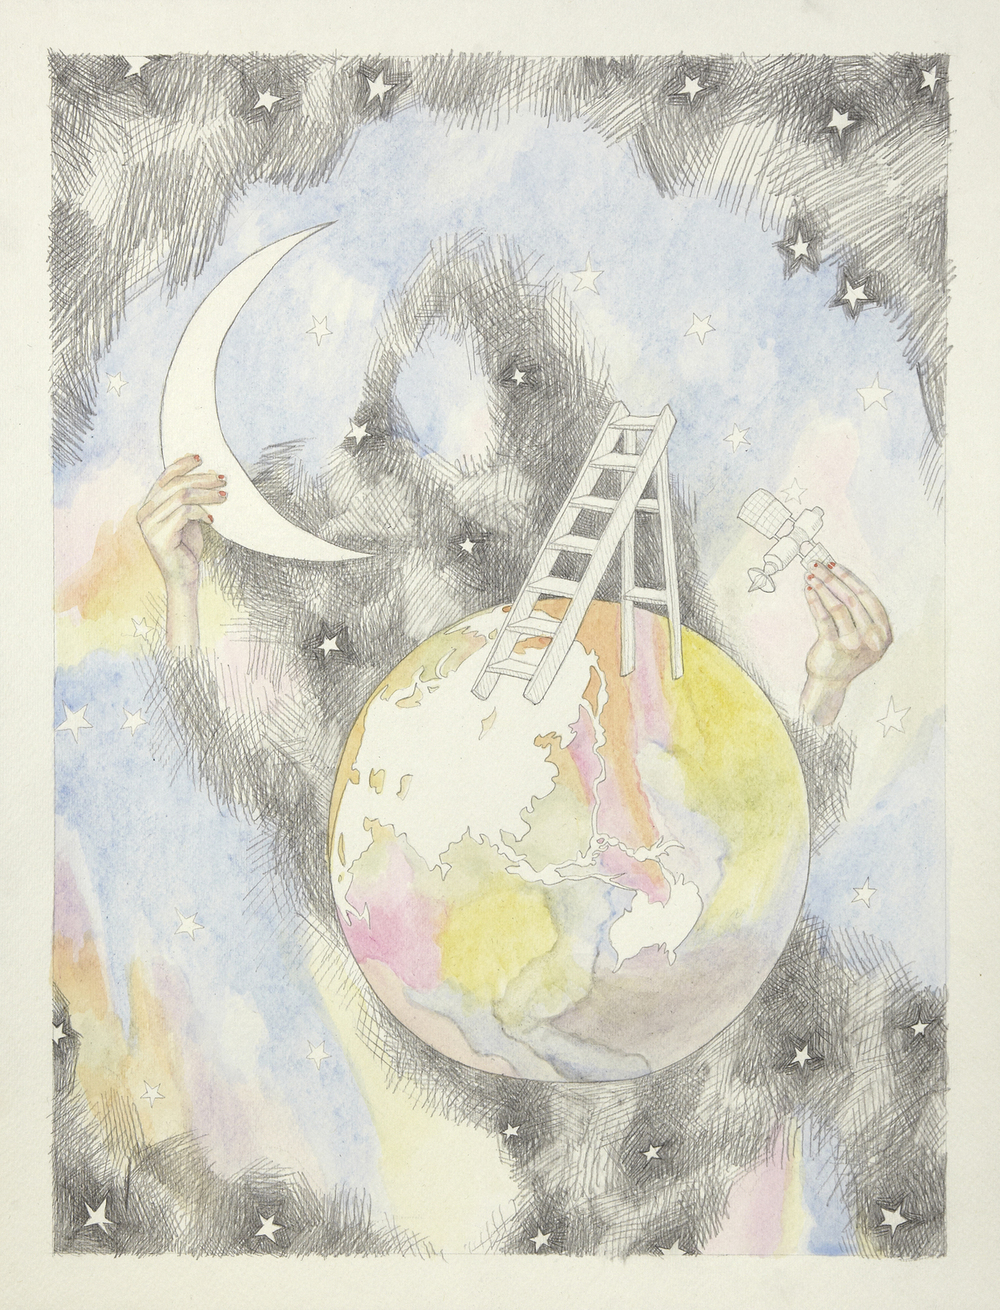 Circle and Moon #2, 2012, Watercolour and pencil on paper, 30.0 x 40.0 cm, Photo: Sam Scoufos